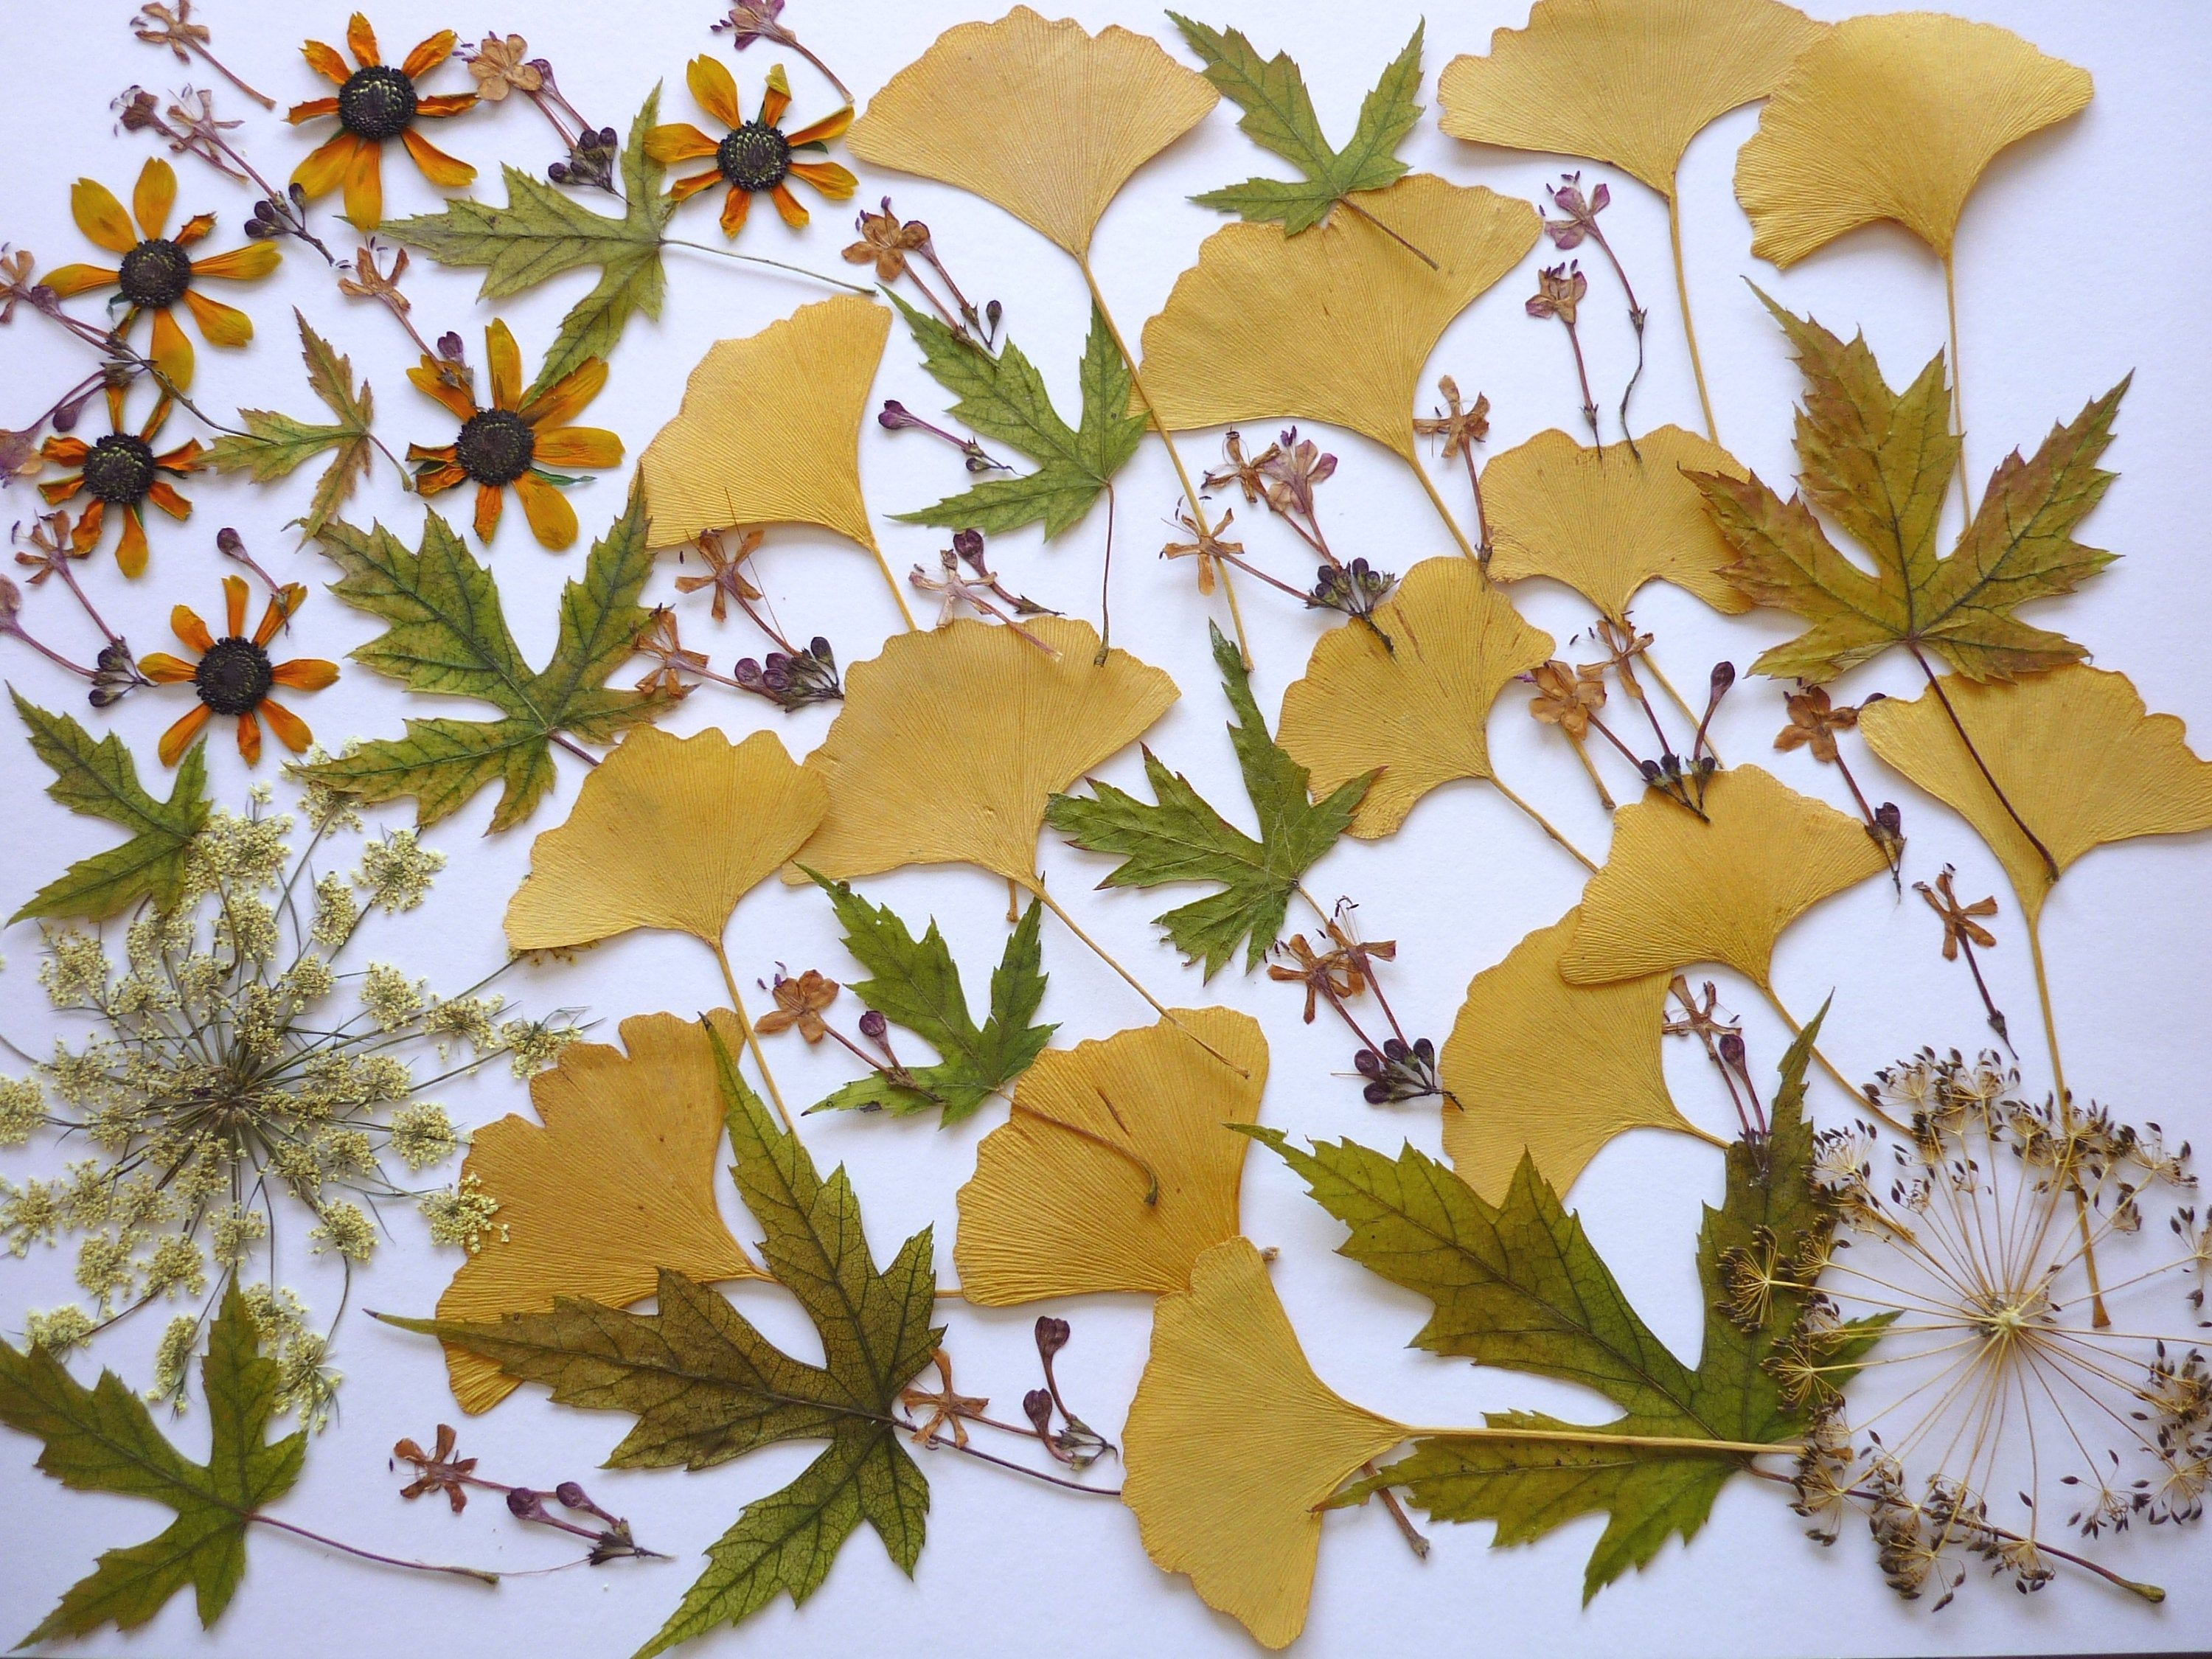 Gingko Leaves Pressed Flower Art Dried Flowers Real Gingko Leaf Dry Flowers Pressed Flower For Wedding Decoration Jewelry Making In 2020 Flower Art Pressed Flower Art Pressed Flowers